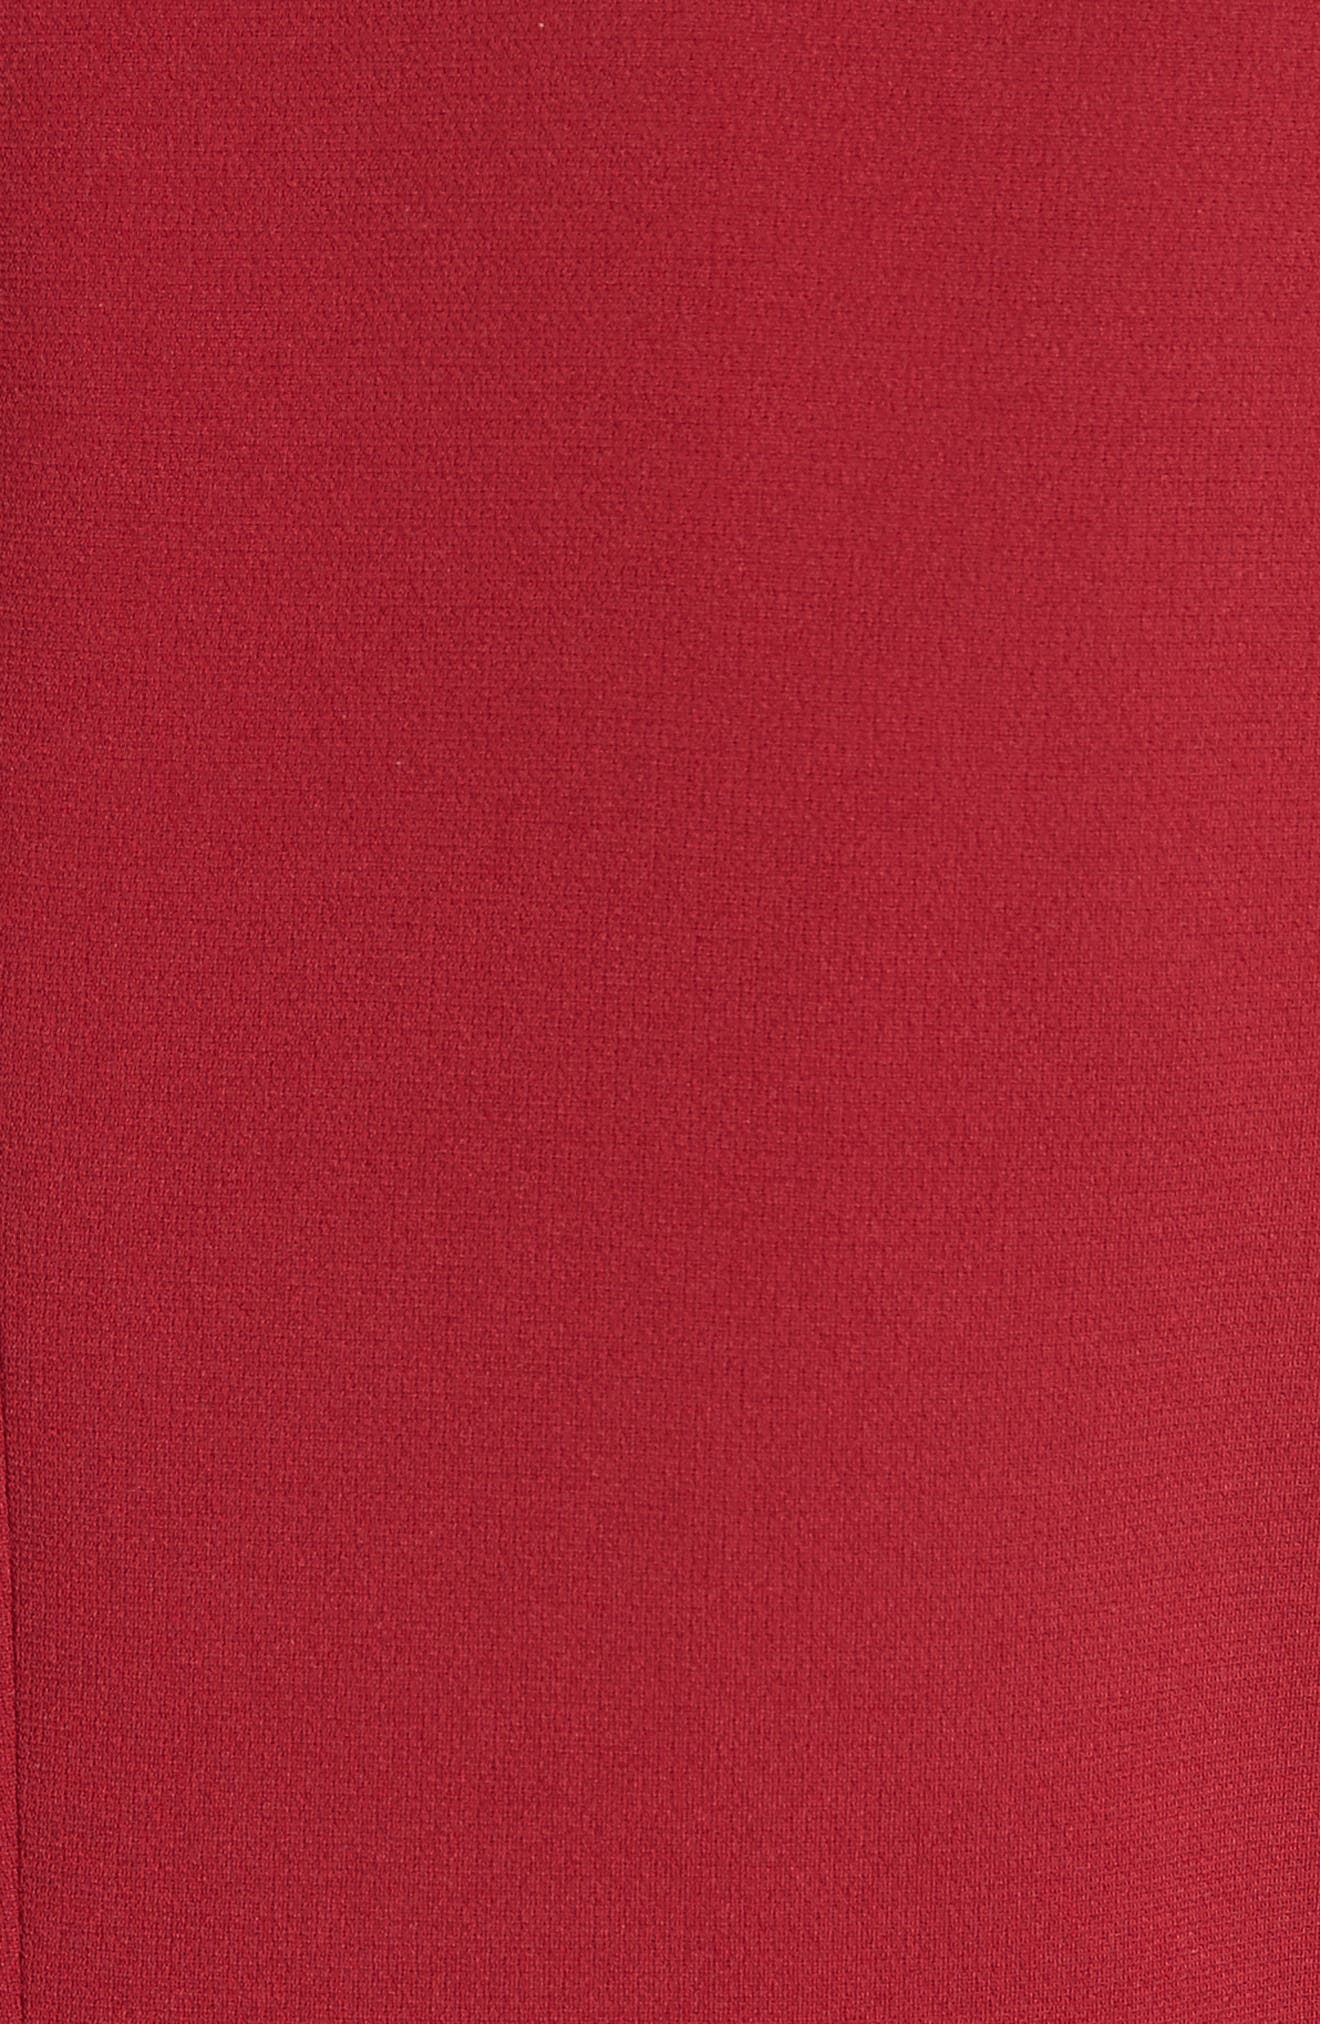 Admiral Crepe Power Jacket,                             Alternate thumbnail 5, color,                             Bright Raspberry